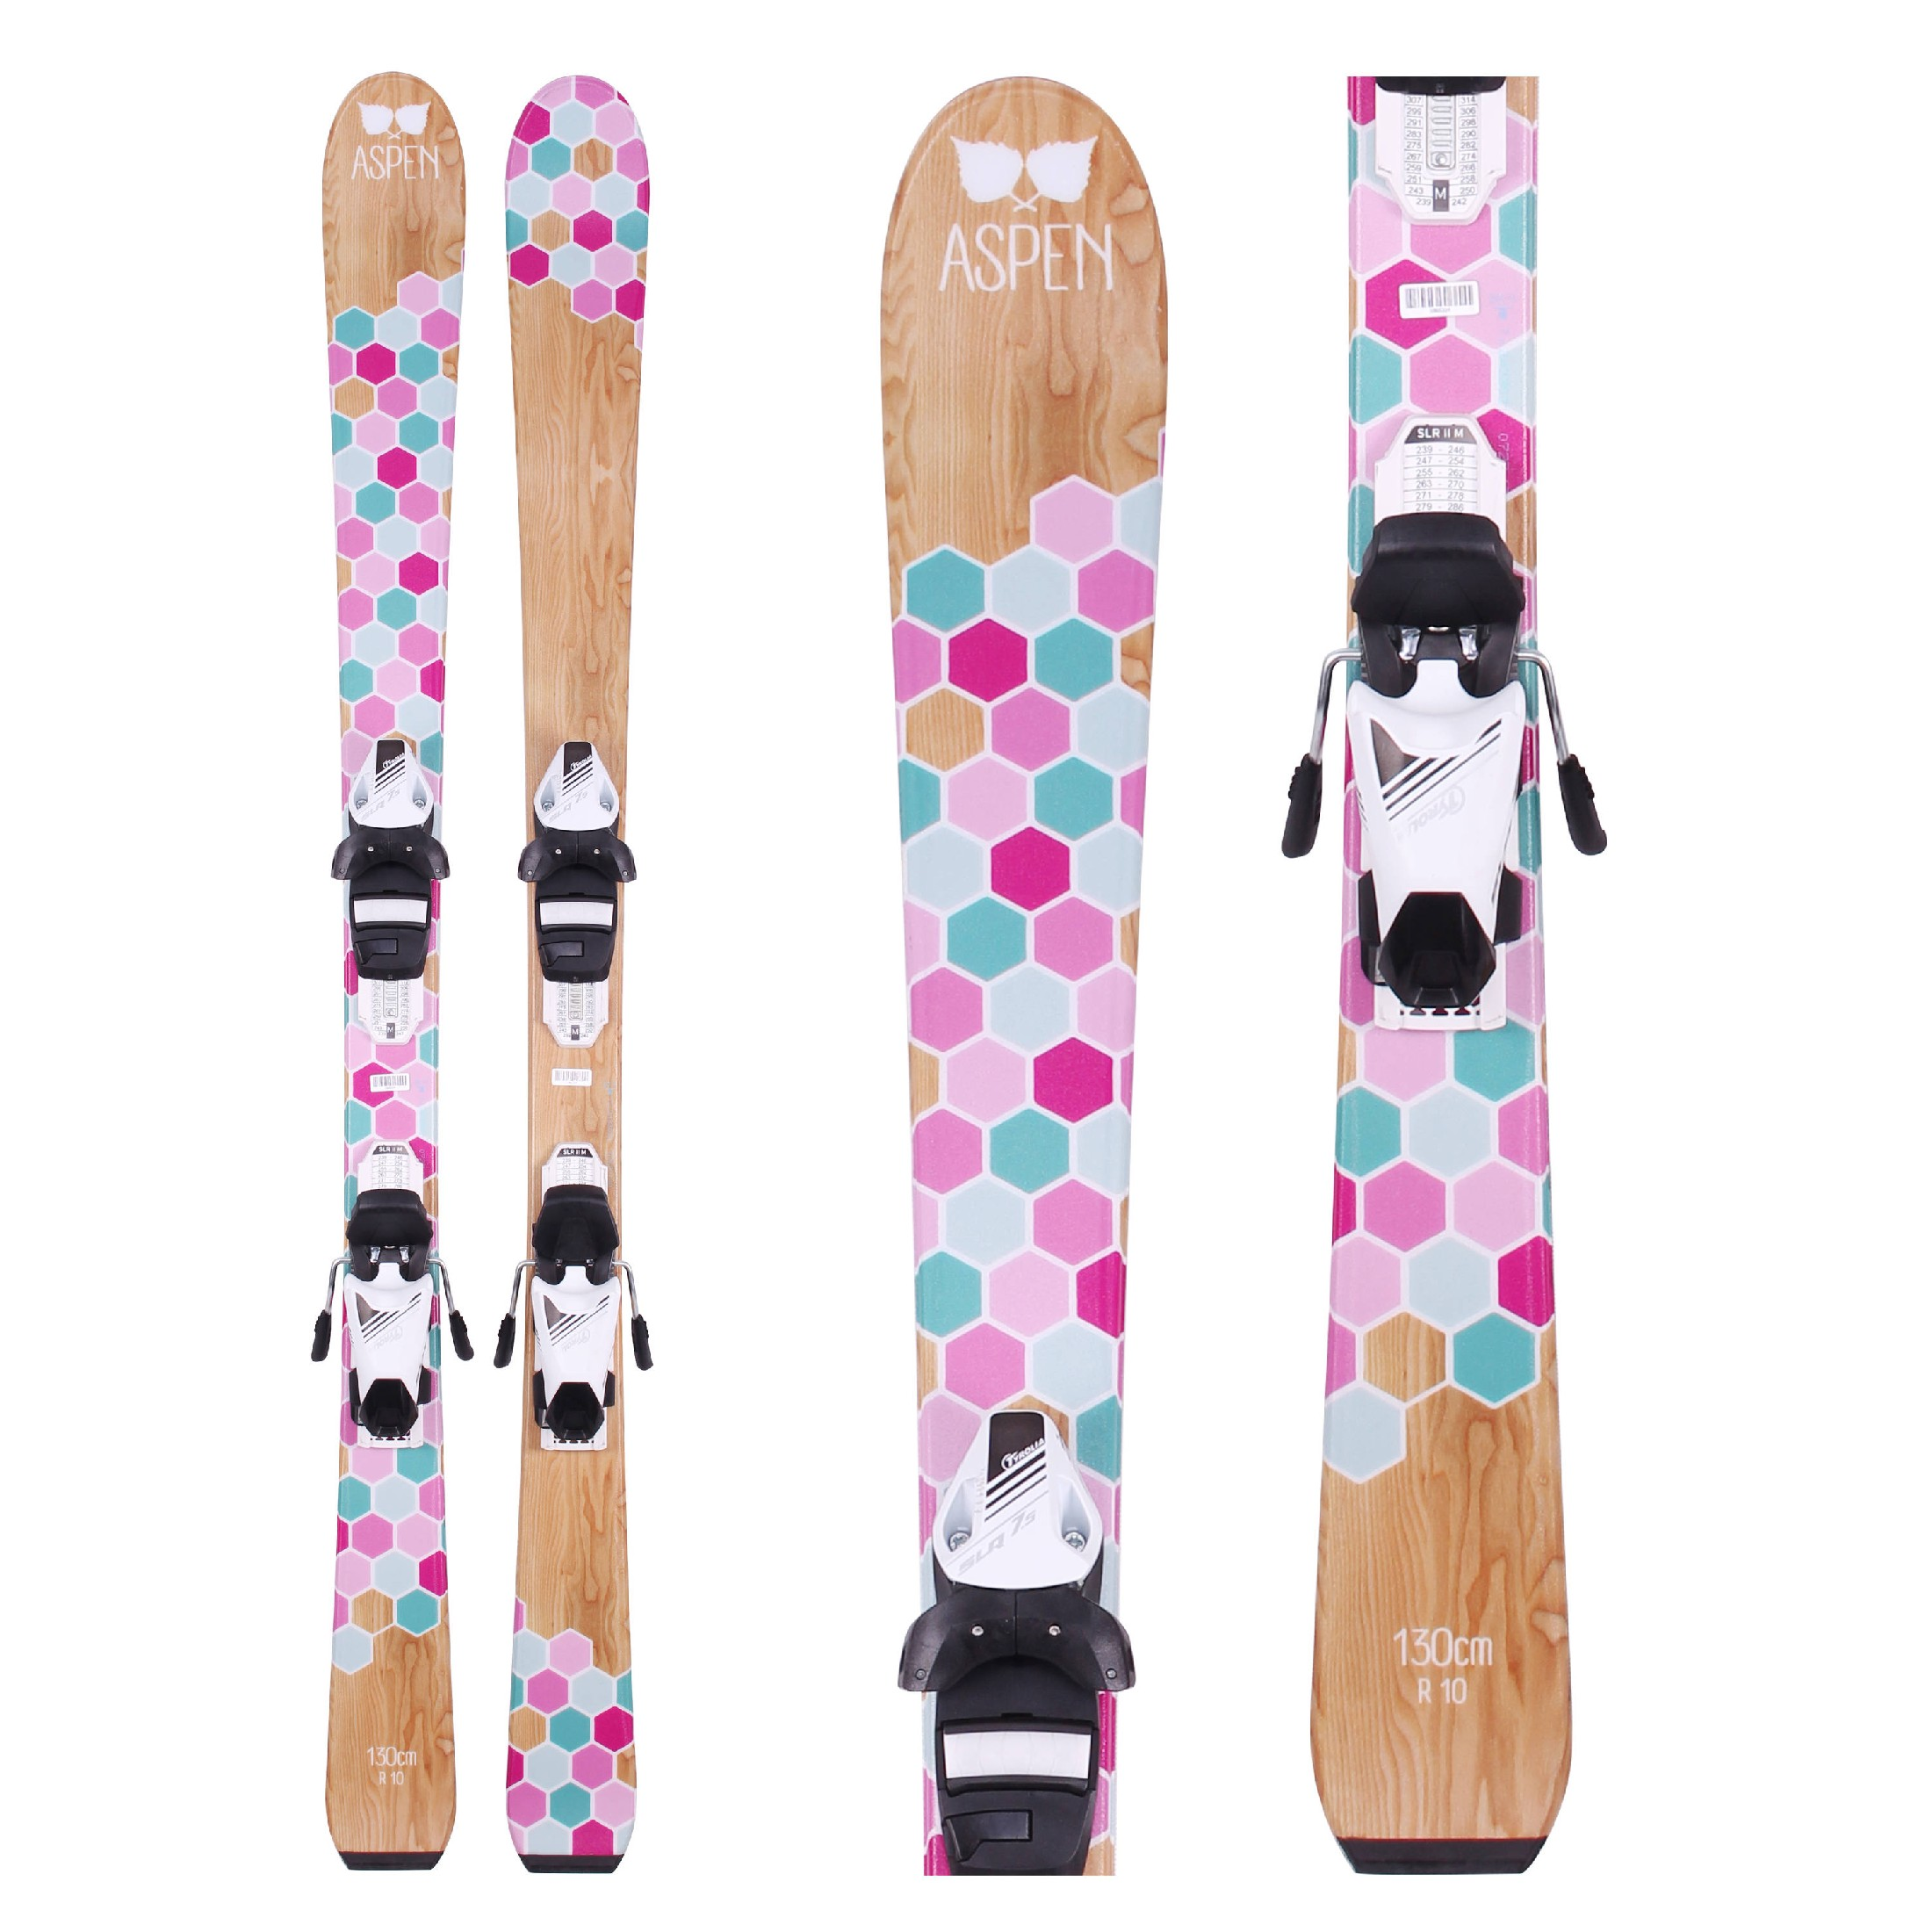 ASPEN SKIS Hexagon - 110 cm  1f90992ffc5